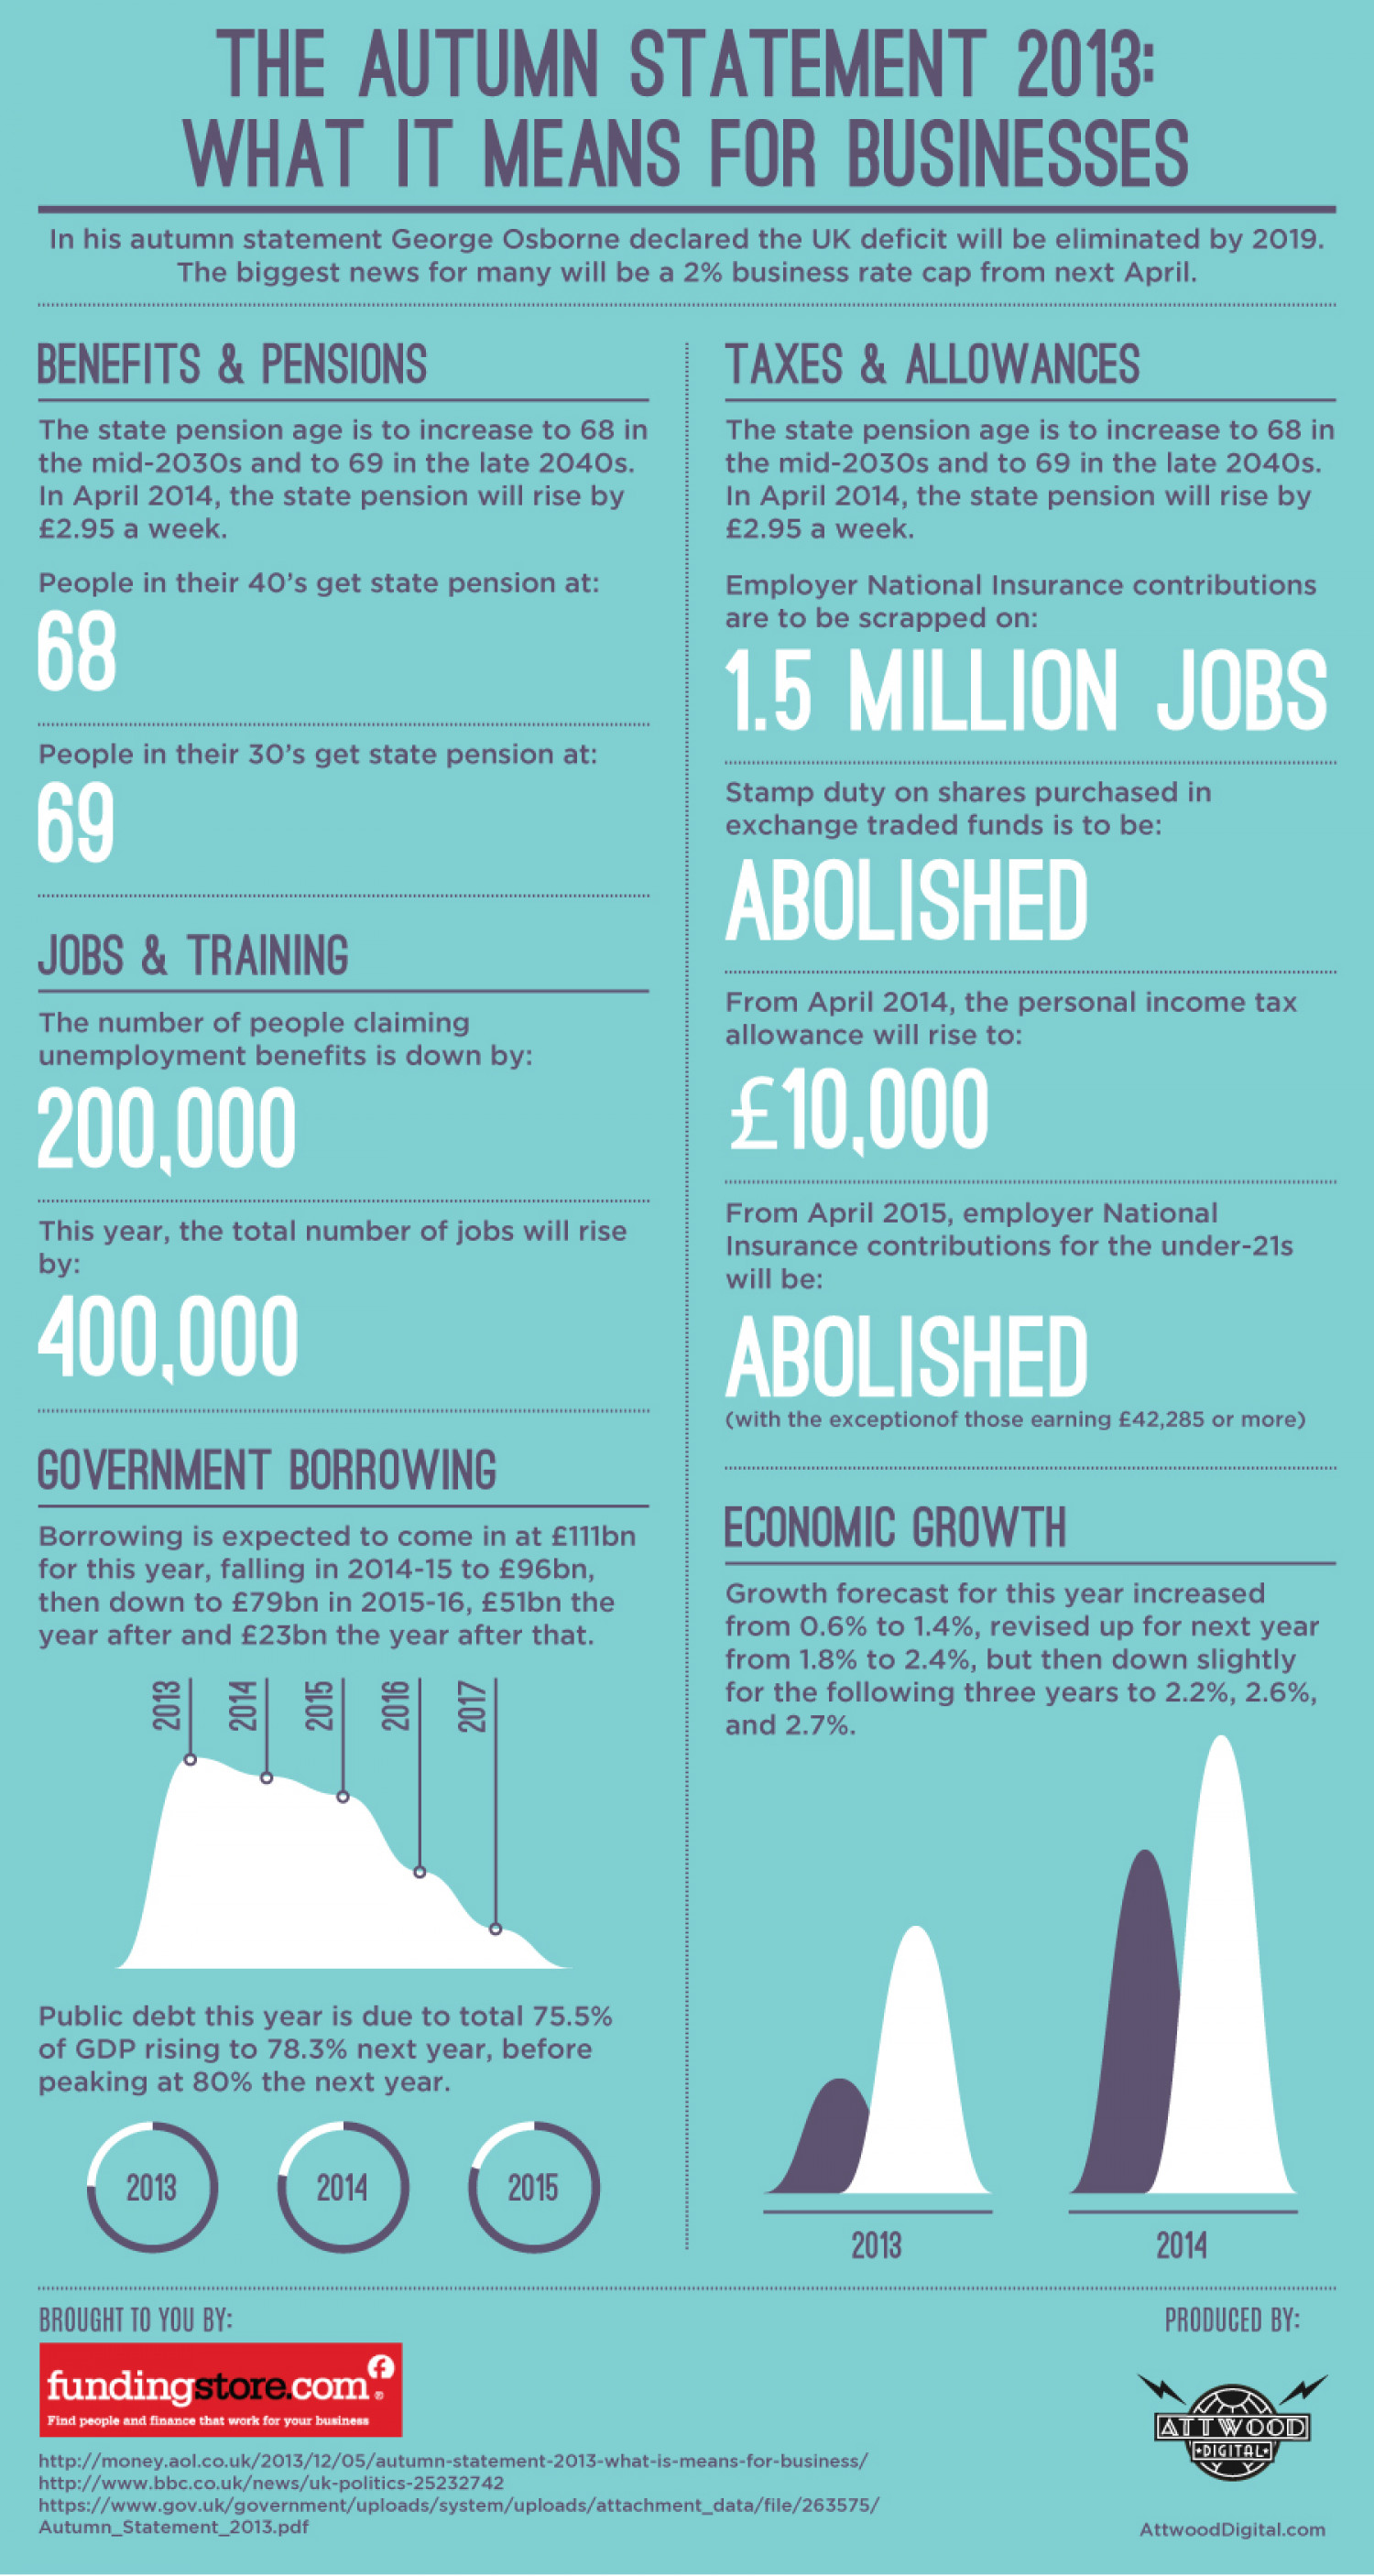 The Autumn Statement 2013: What It Means For Businesses Infographic